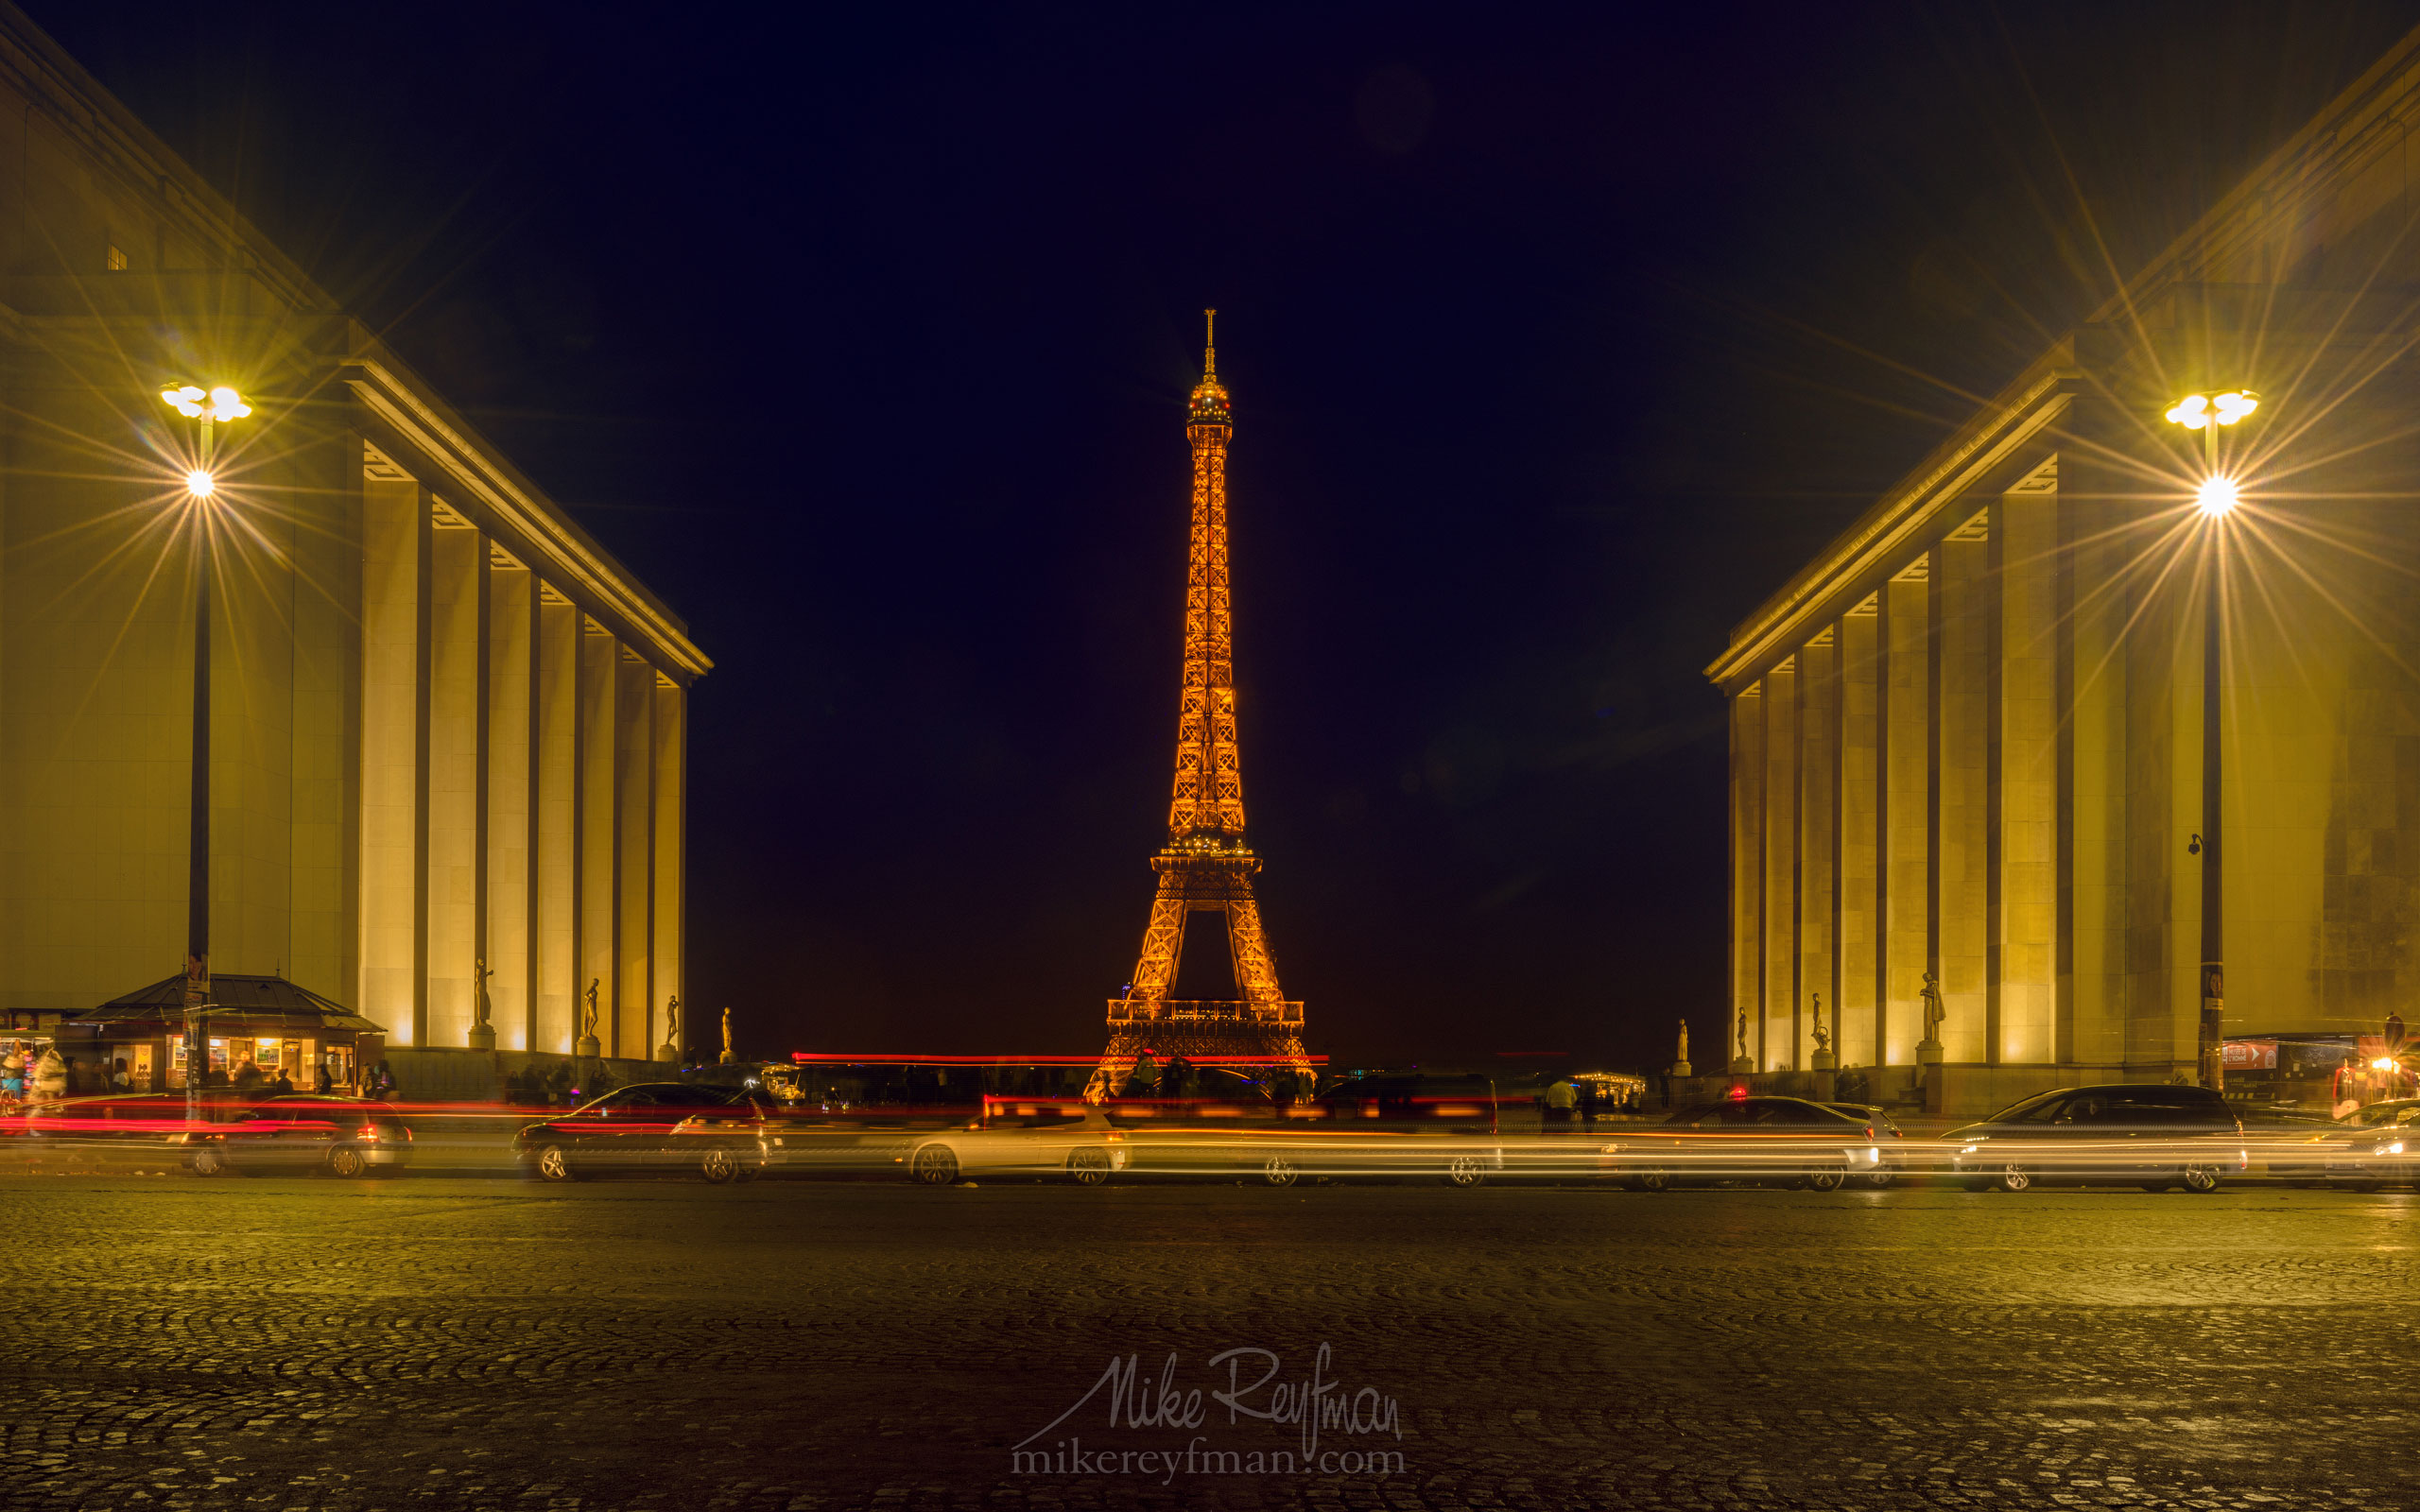 The Eiffel Tower from Jardins du Trocadéro, Paris, France FR1-MR50A1800 - Symmetries and Beyond. Random photos. France. - Mike Reyfman Photography